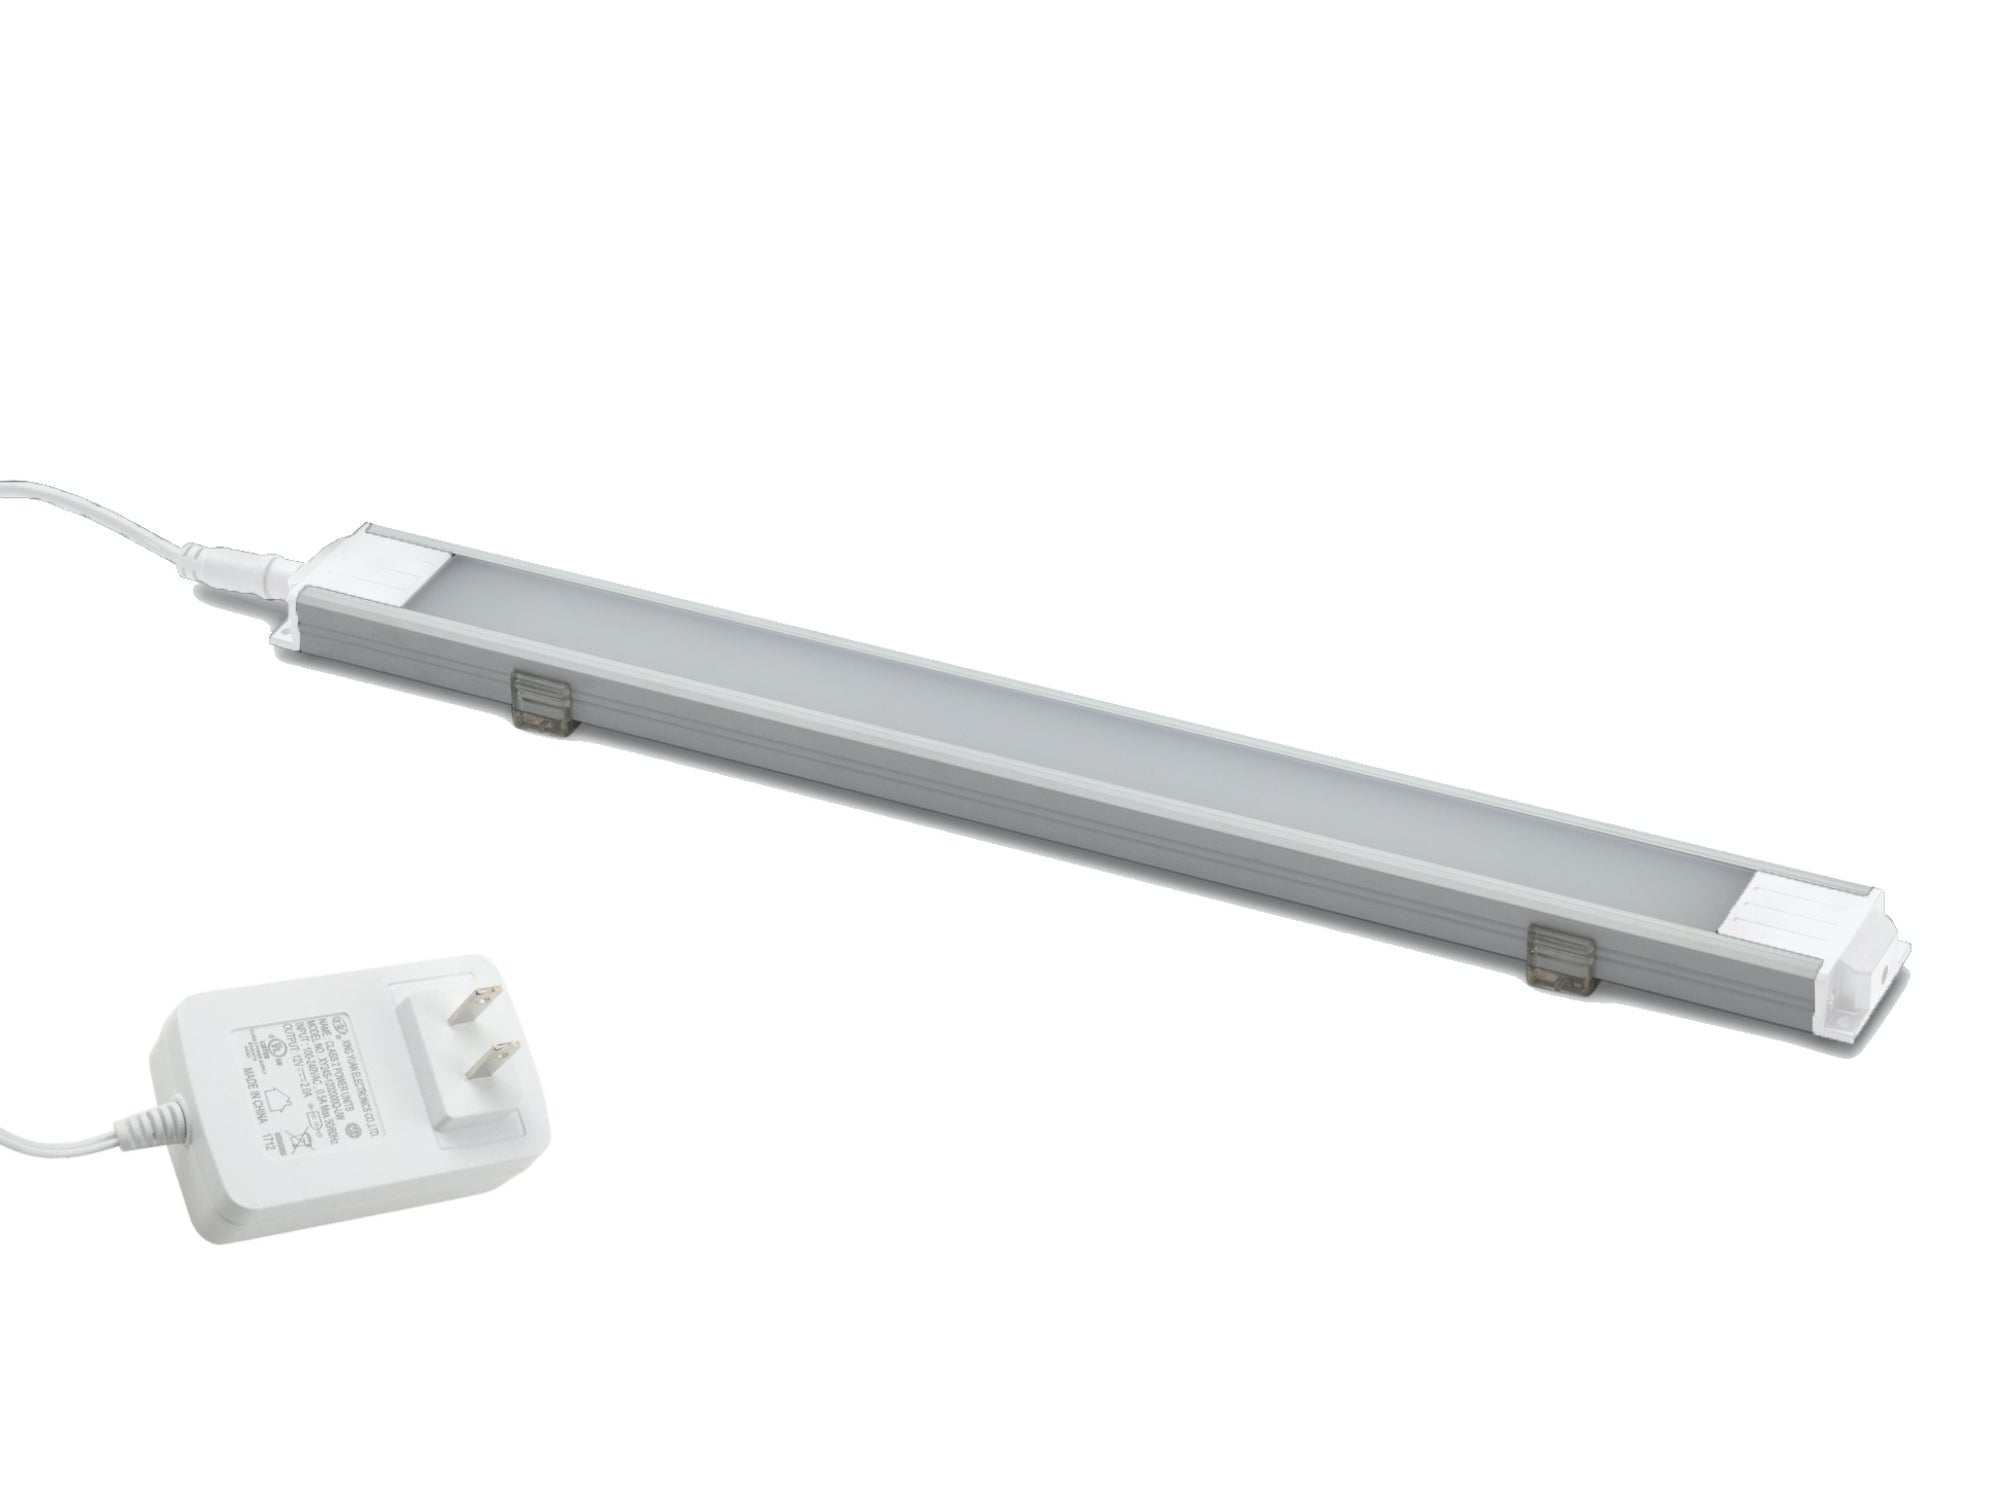 4000K LED Lights (1 x LED with Adapters, 3 x LED with Connector Cable)